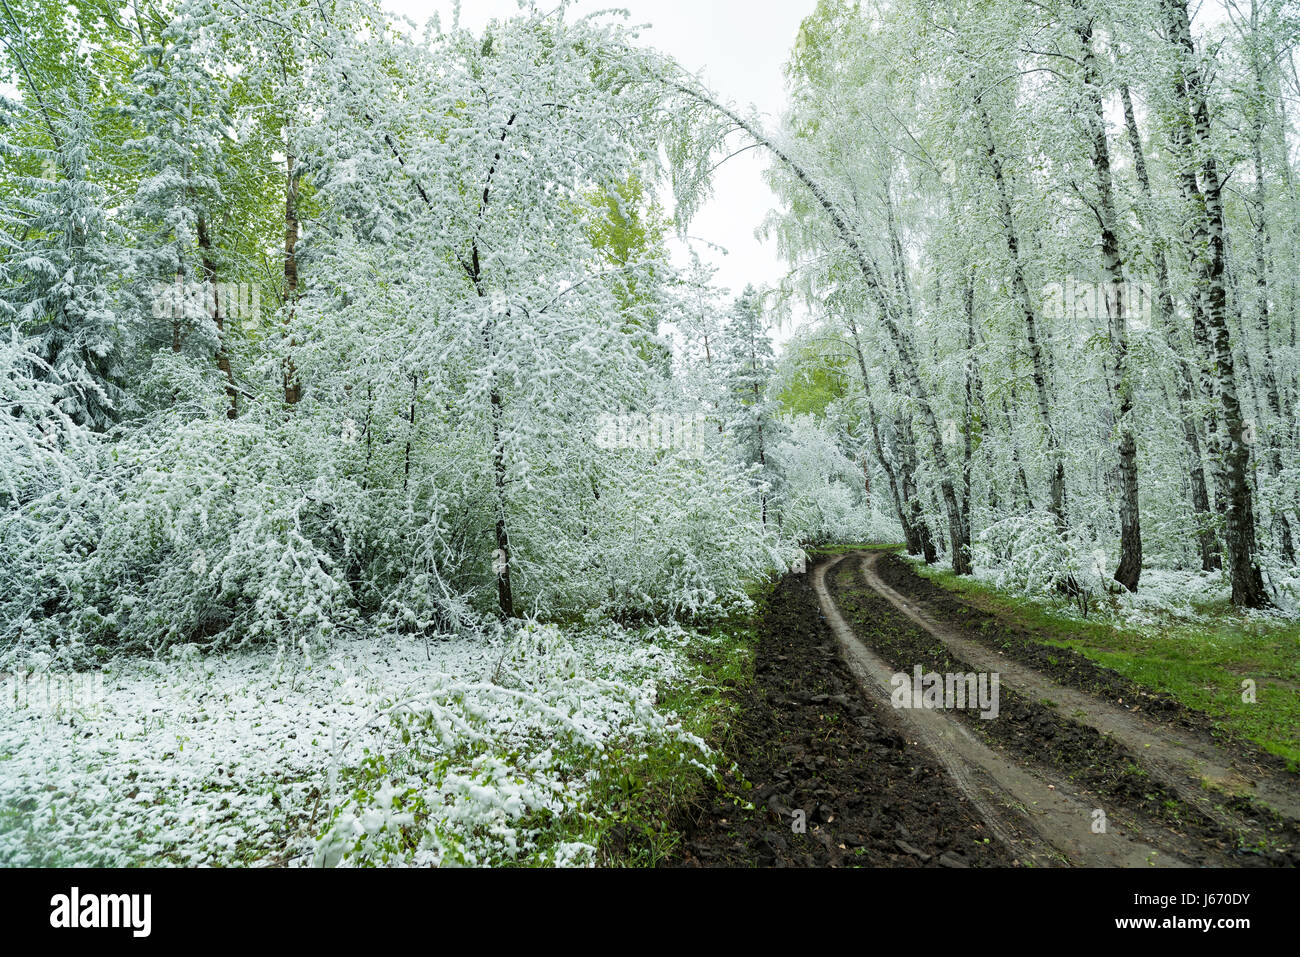 Green leaves of the trees and grass covered with snow - Stock Image